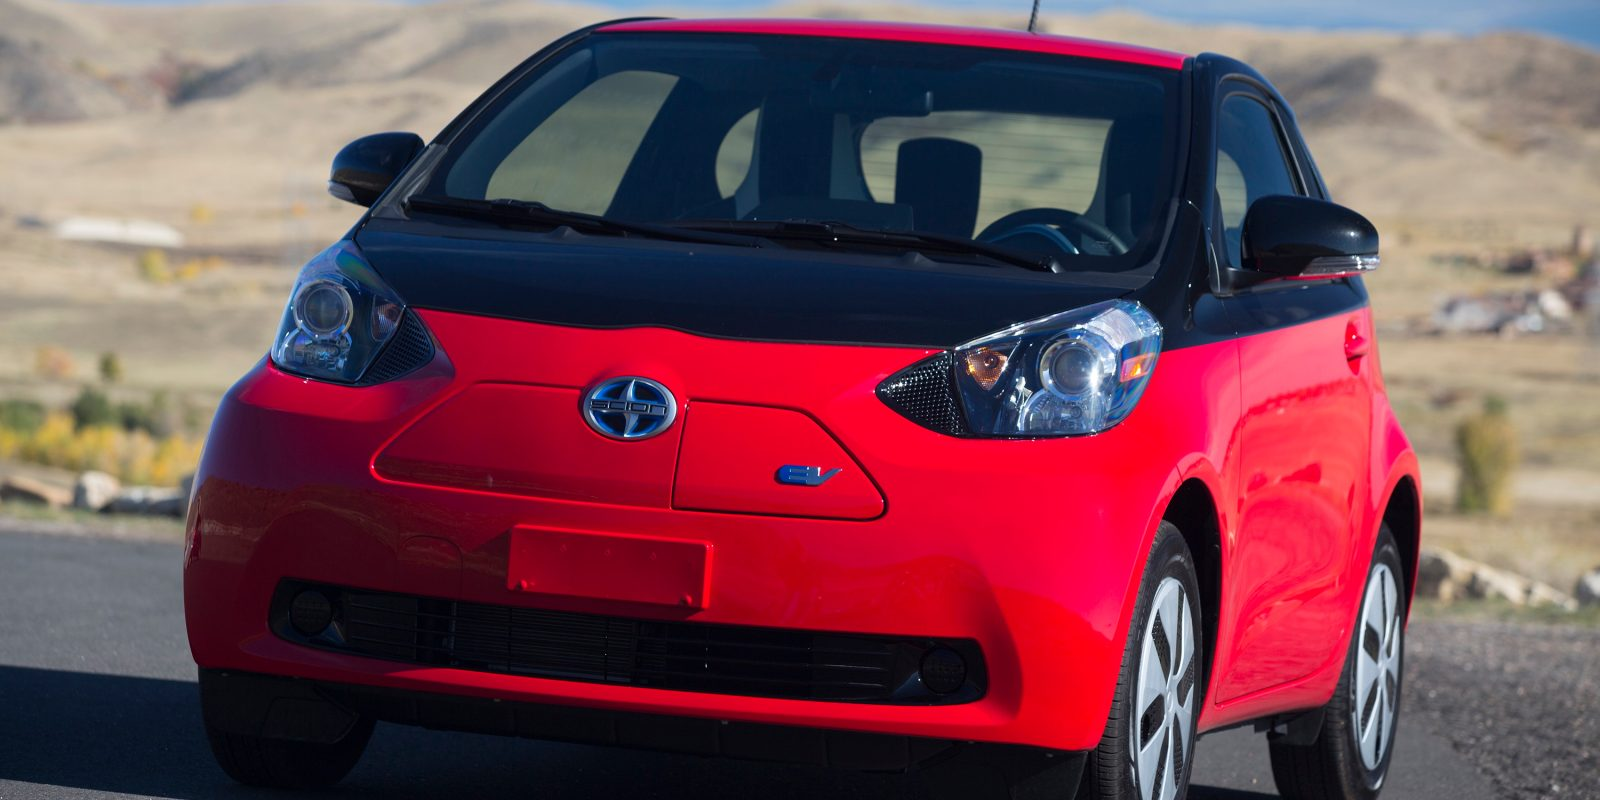 photo of Toyota to sell its electric car tech to Chinese startup Singulato, report says image